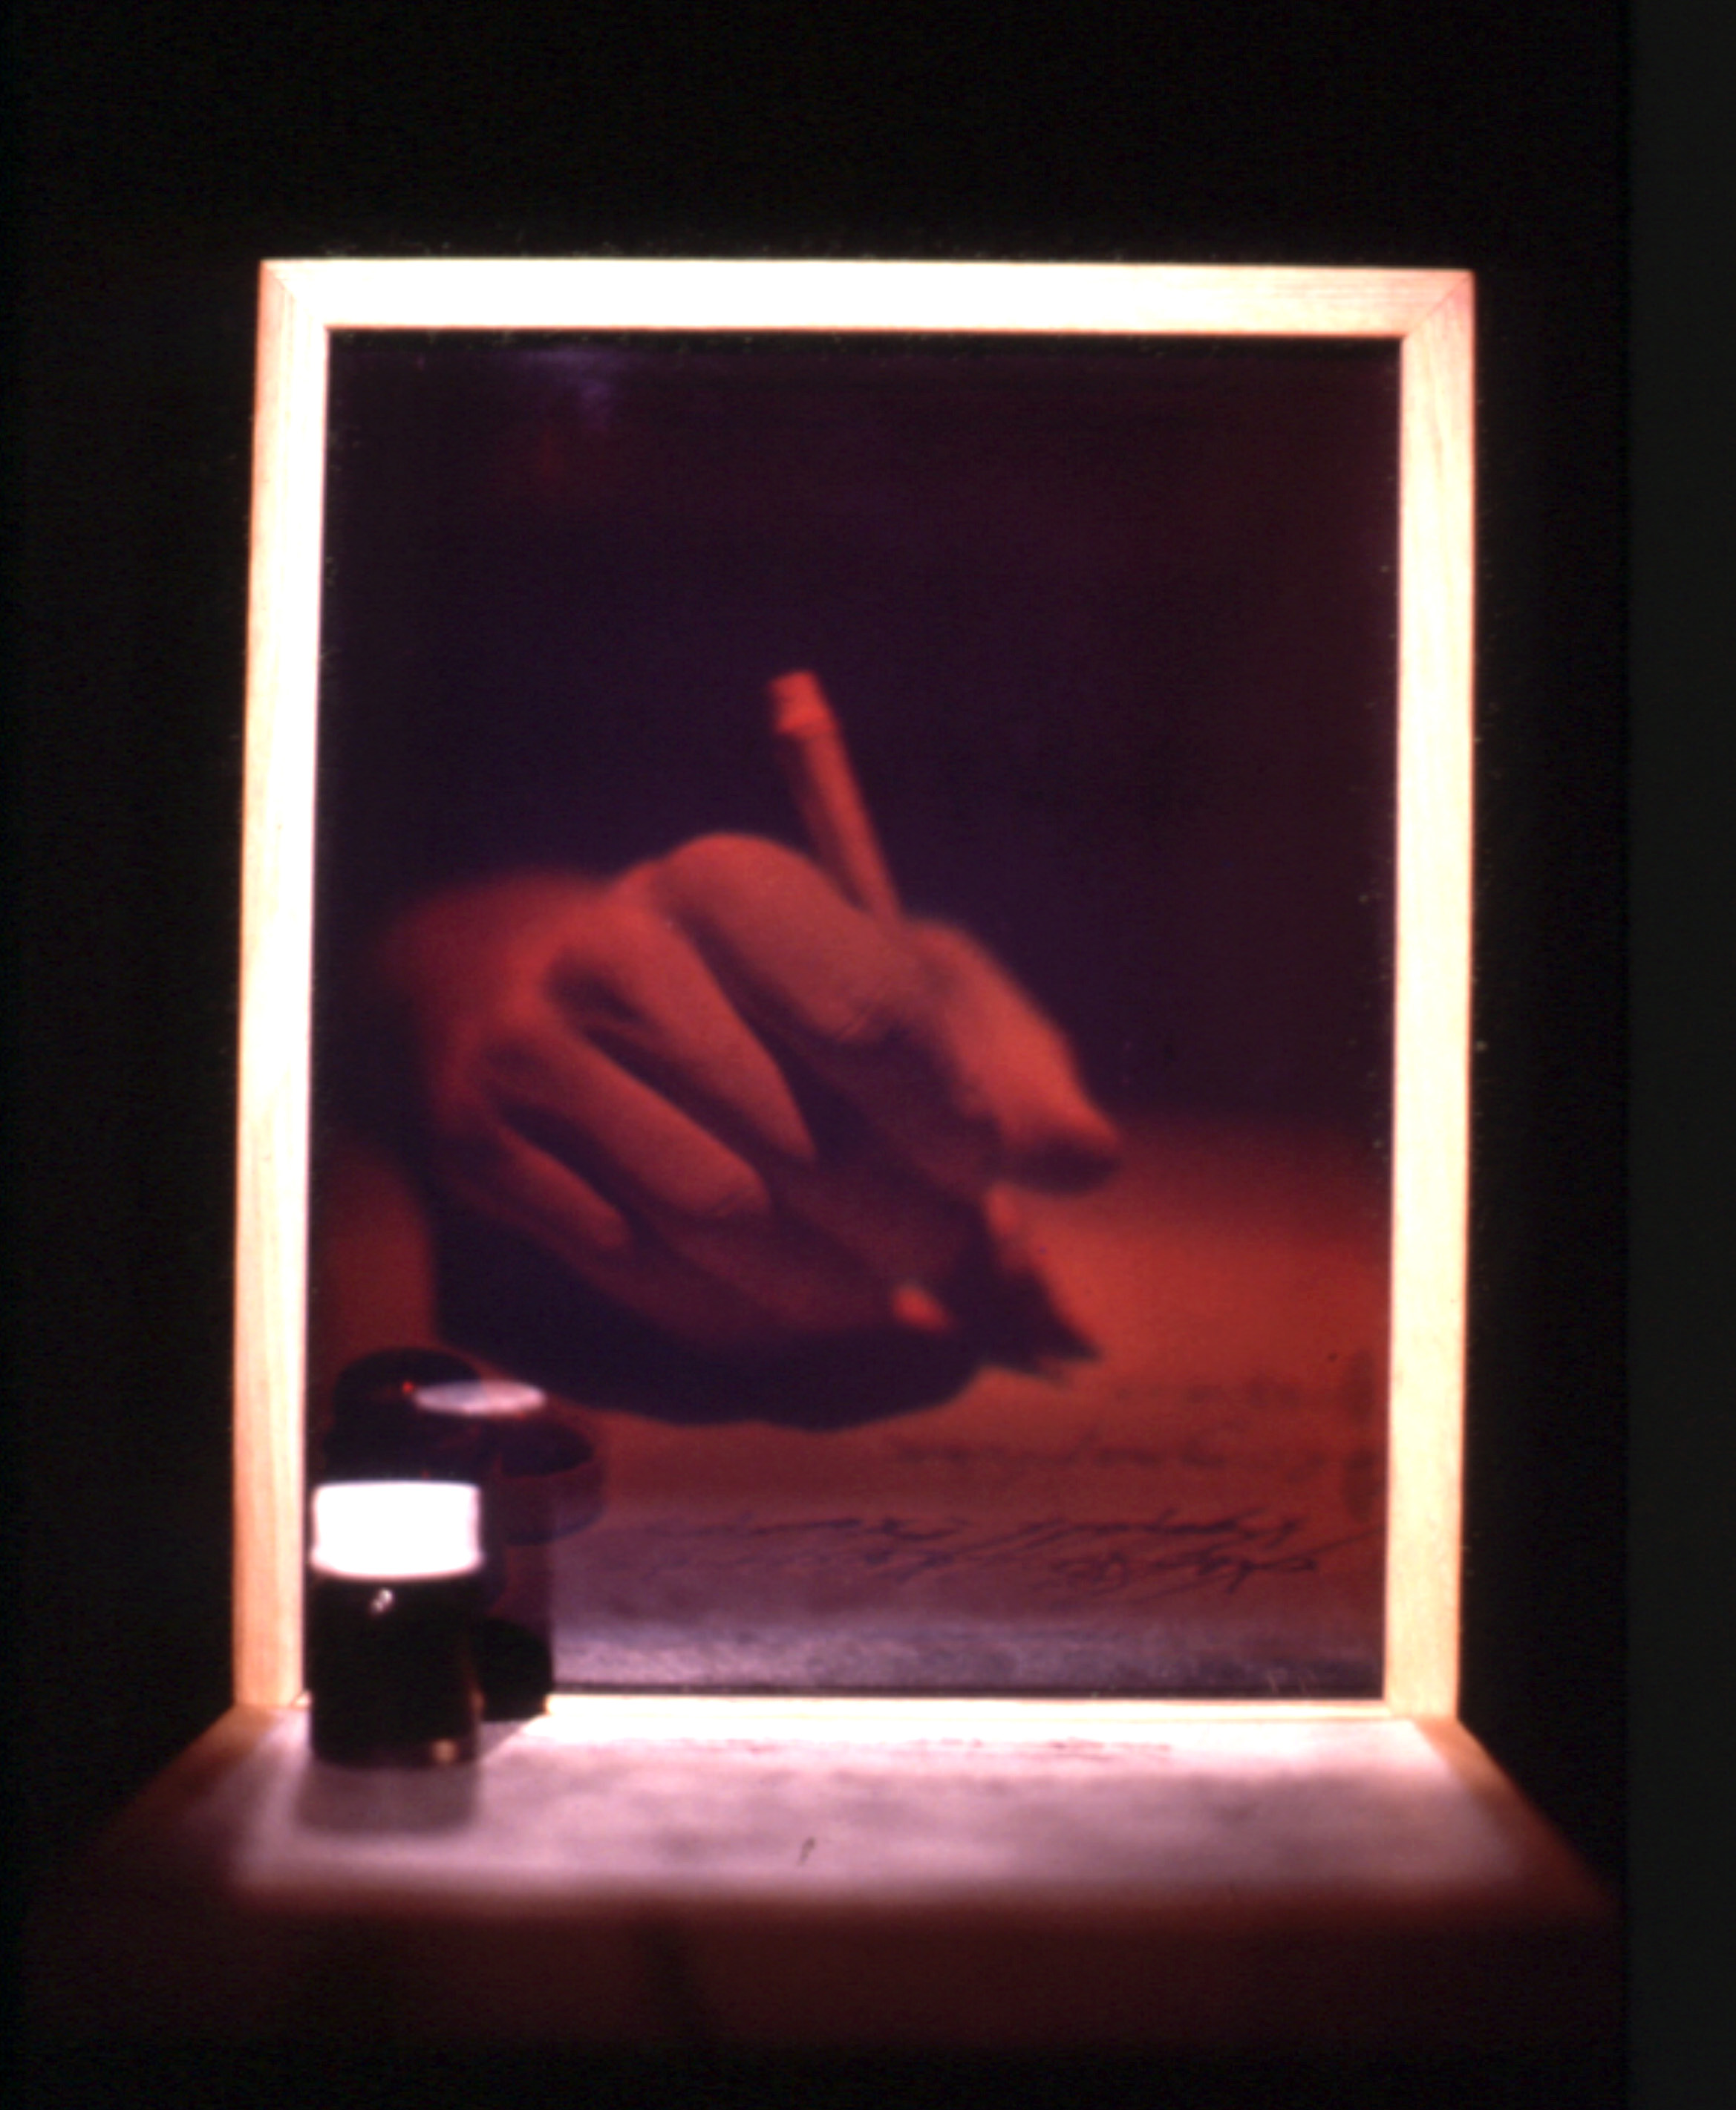 """Tranche d'espace-temps"", 1984 Reflection hologram on glass (WLR), wood, ink on paper and bottle 21 x 30 x 22 cm, ed. 6/6"